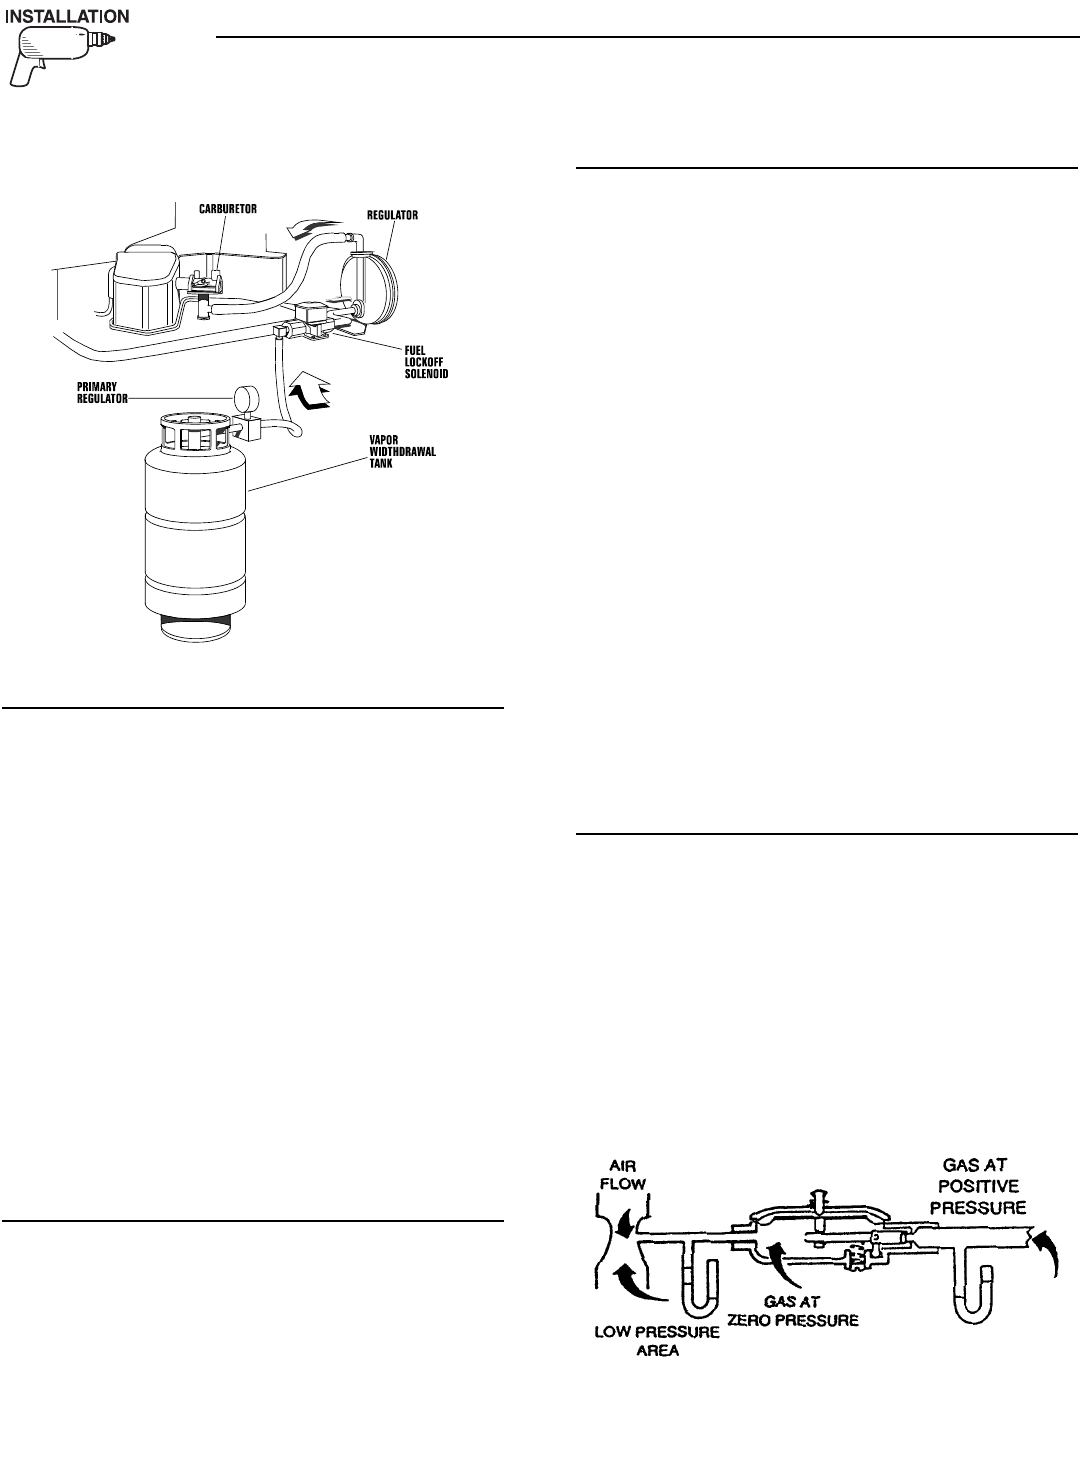 Generac 004702 0 004703 004704 004705 004706 004707 Owners Manual Remote Start Wiring Diagrams Bing Images 28 Generacpower Systems Inc